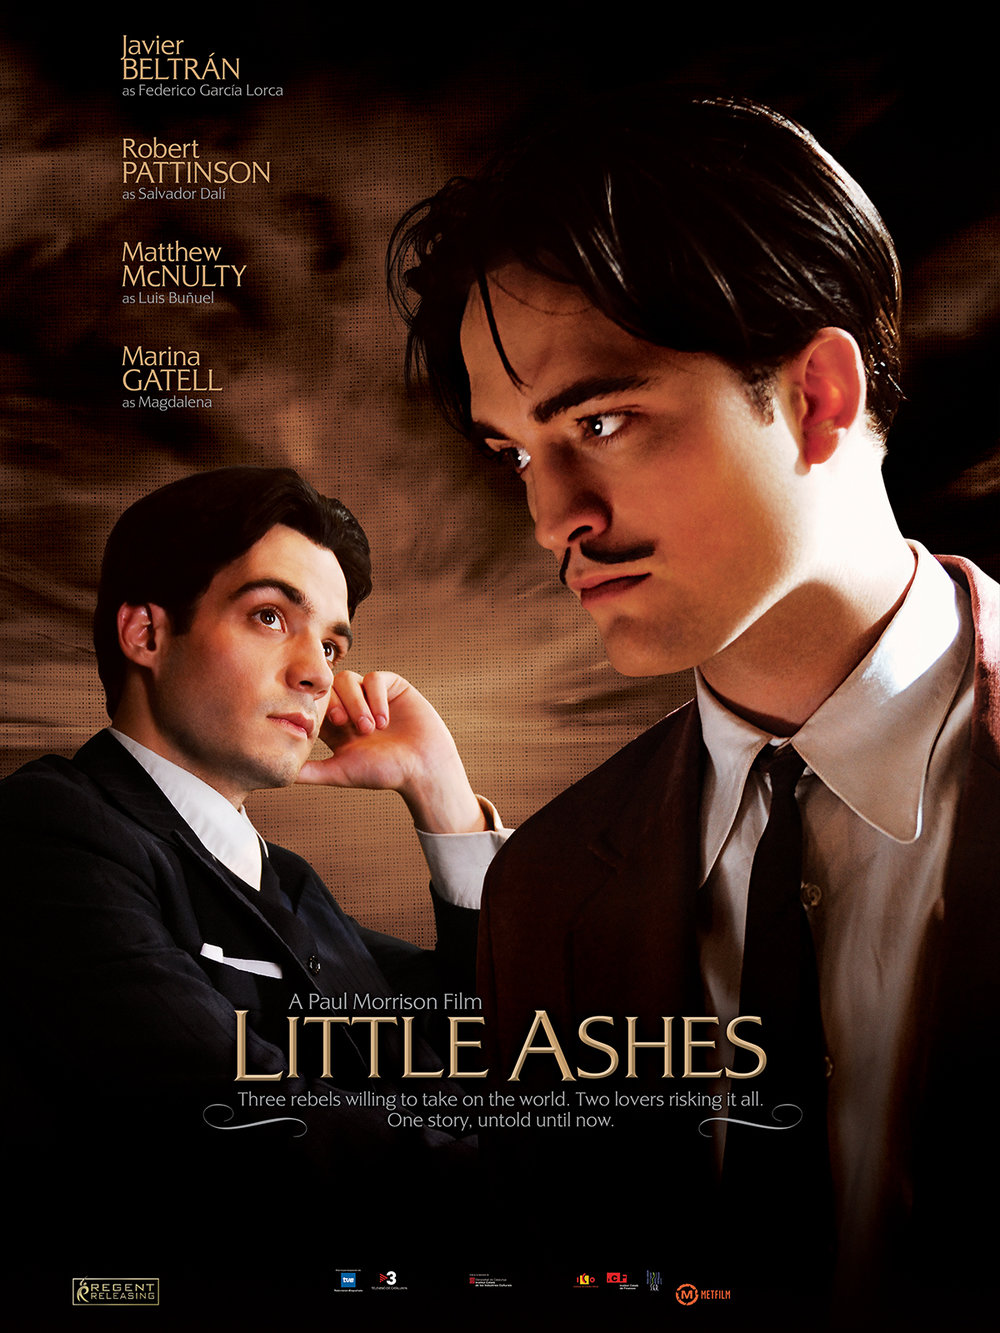 Here-LittleAshes-Full-Image-en-US.jpg